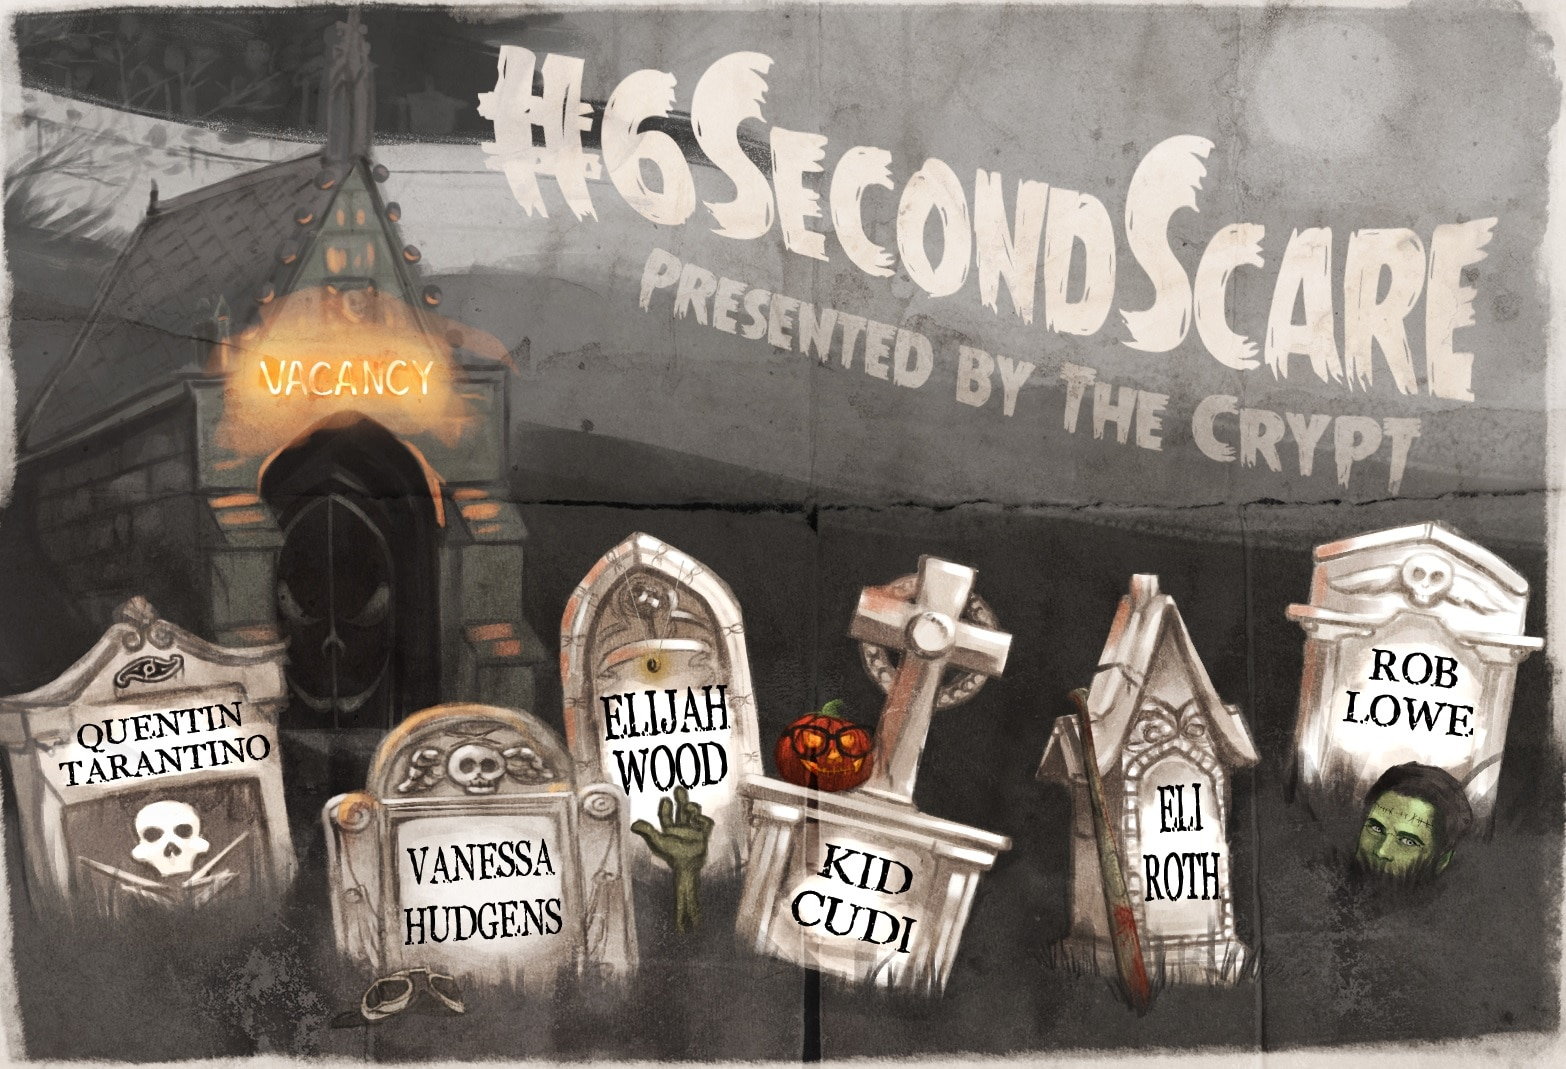 6seconds - The Crypt Launches #6SecondScare Competition; Winner Develops Film with Eli Roth!